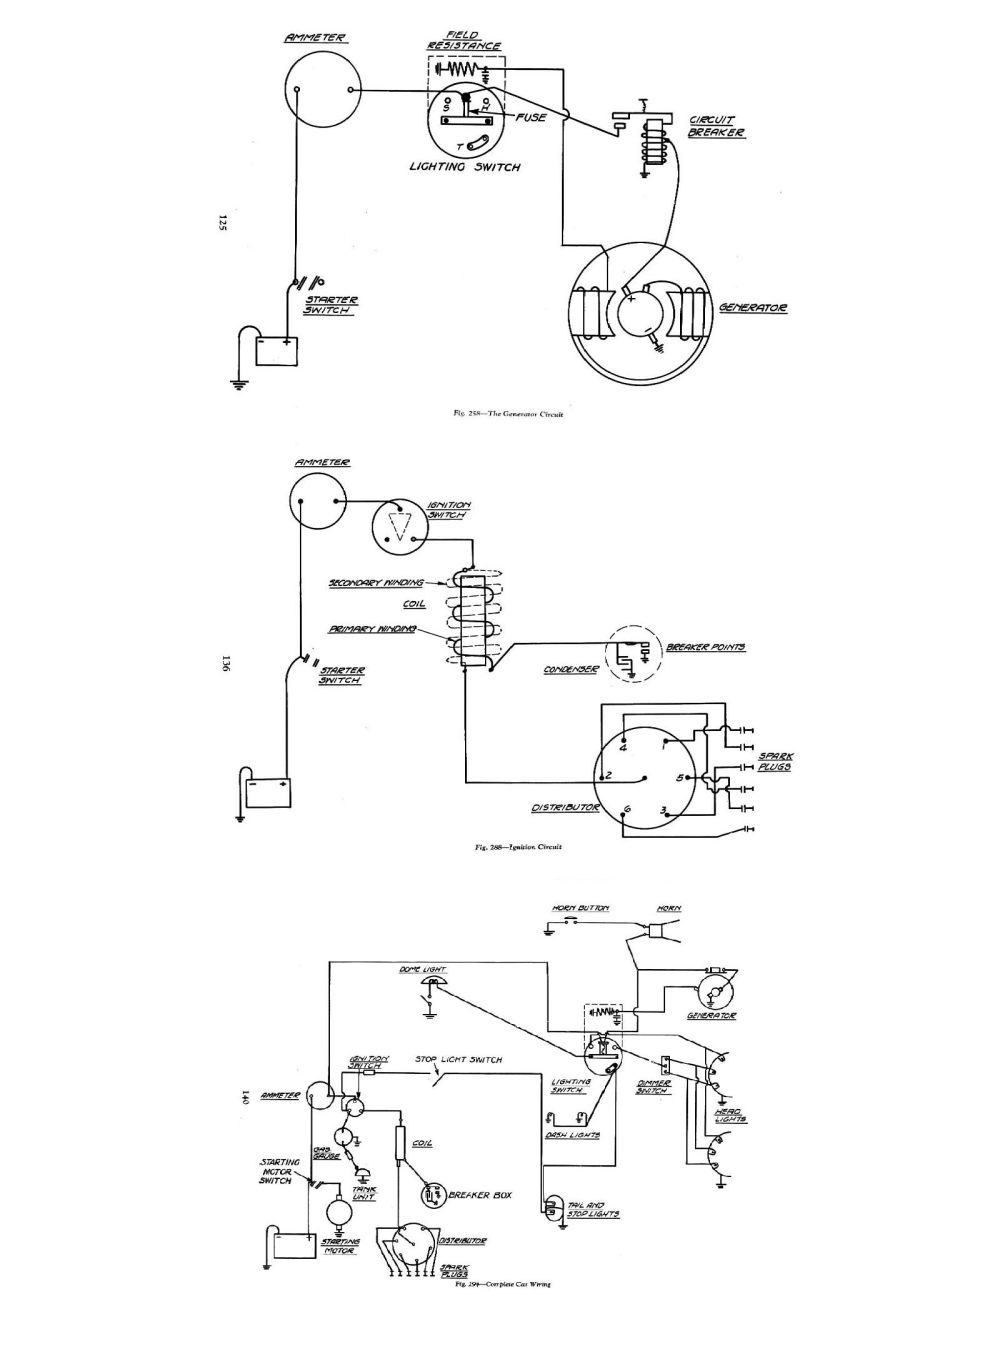 medium resolution of generator and regulator circuit diagram for the 1947 chevrolet chevy wiring diagrams generator and regulator circuit